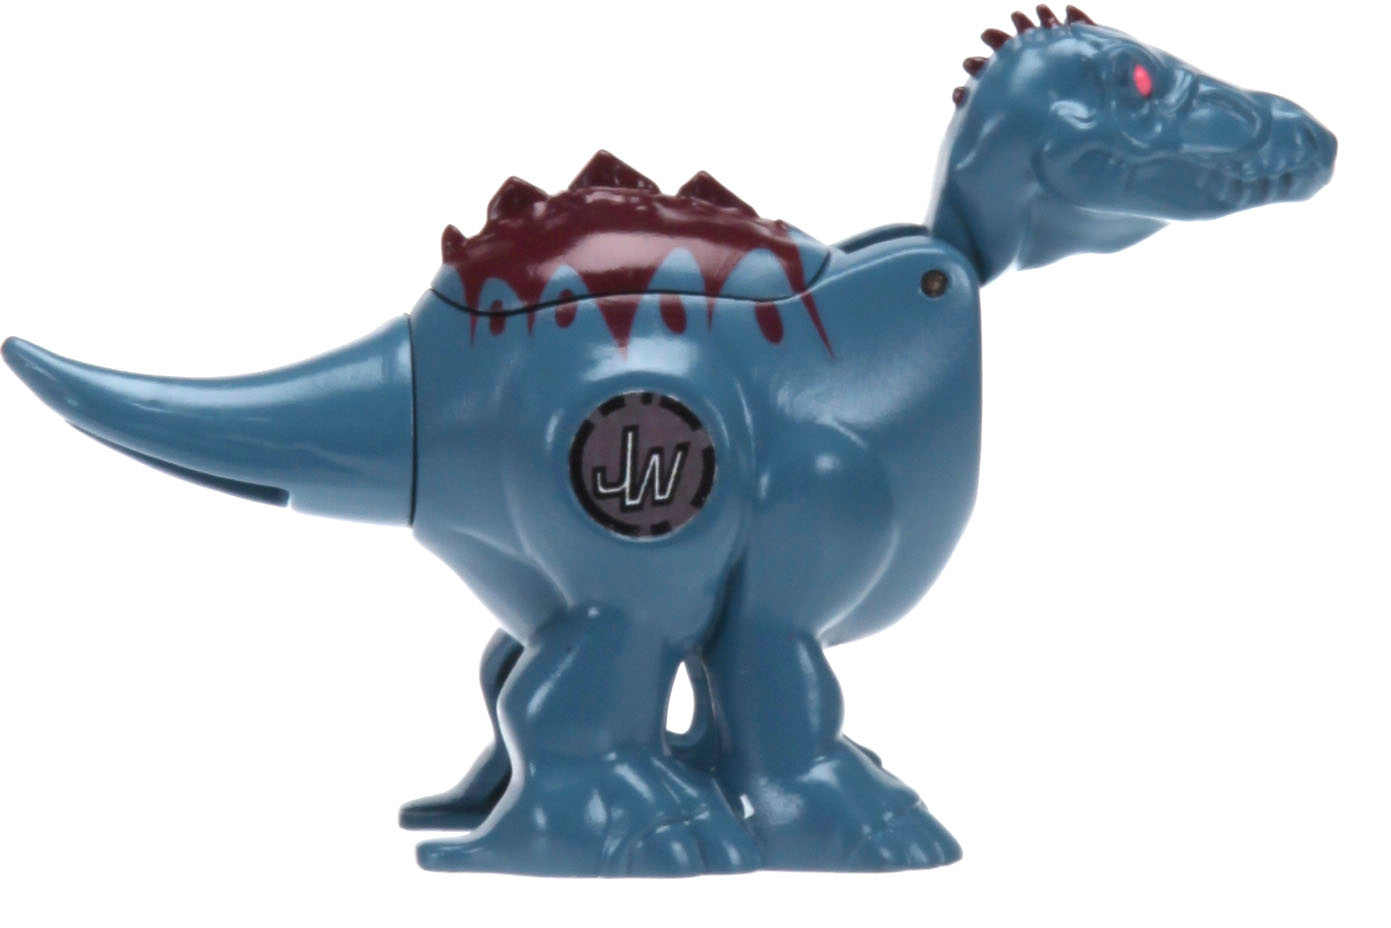 First Look: 'Jurassic World' Dino Toys Including Indominus